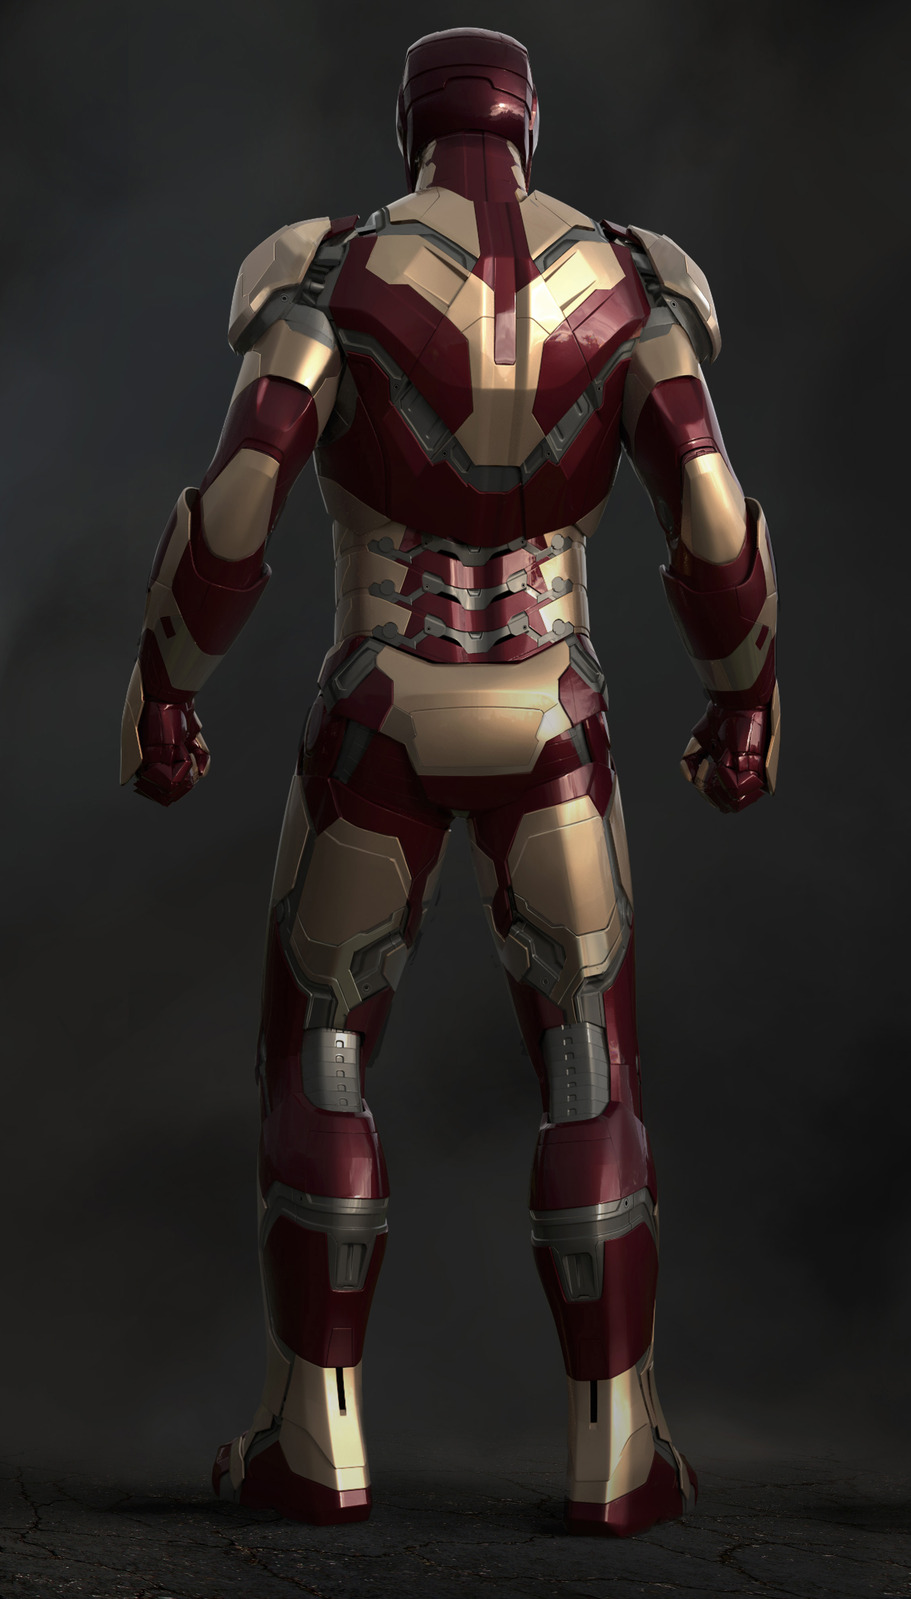 IRON MAN 3 - Concept Art for War Machine, Malibu Attack ...